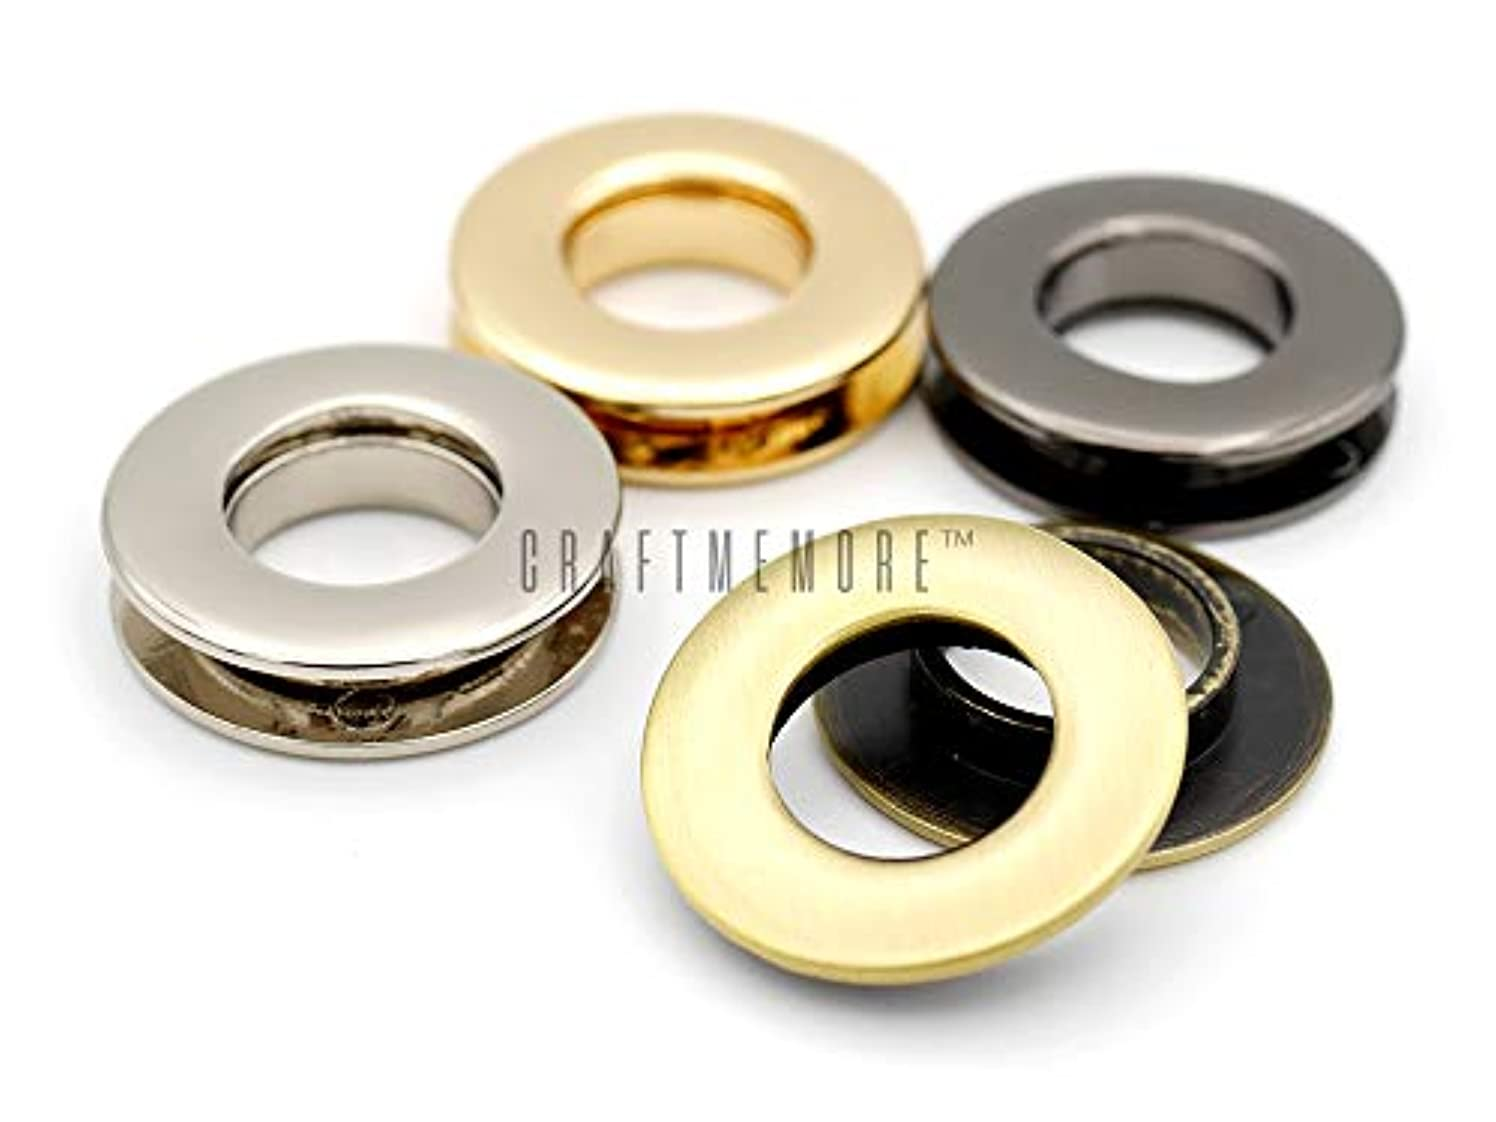 CRAFTMEmore Metal Push Snap Together Grommet Flat Surface Snap Rings Eyelet O-Rings Purse Loop Easy Installation Pack of 4 Complete Rings (17mm (11/16